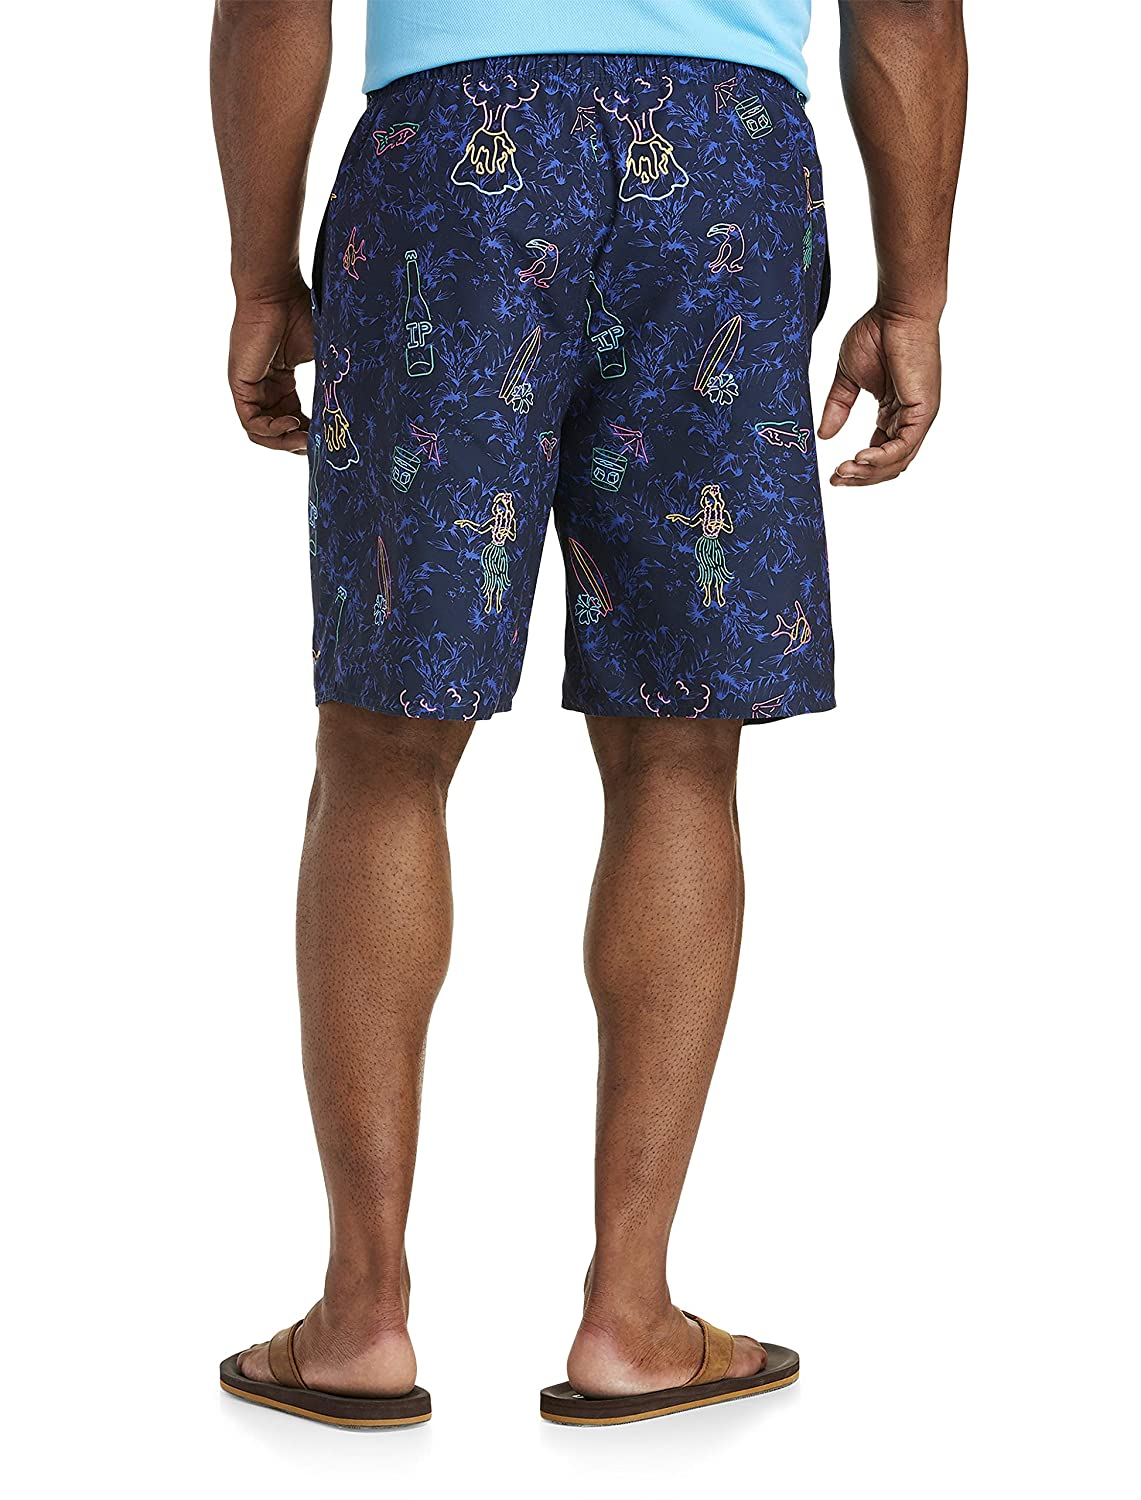 Island Passport by DXL Big and Tall Floral Neon Lights Swim Trunks Peacoat Navy